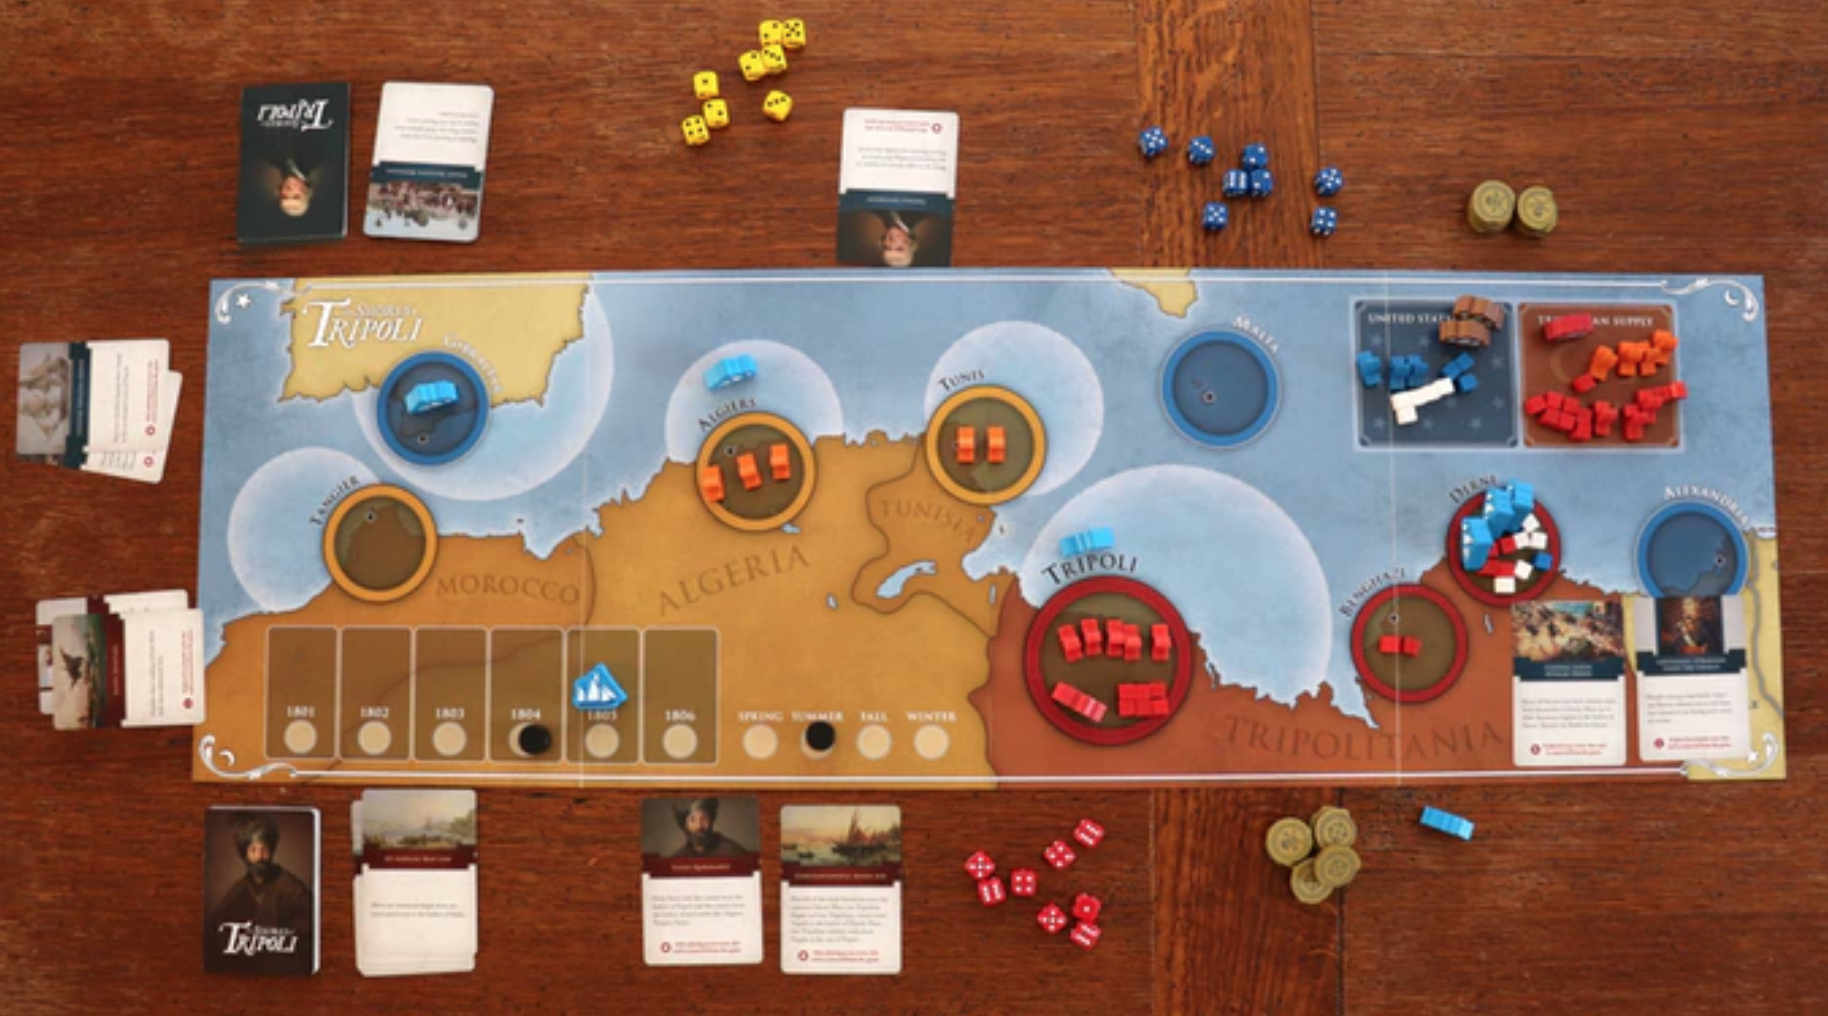 Win the first War on Terror by backing 'Shores of Tripoli' on Kickstarter